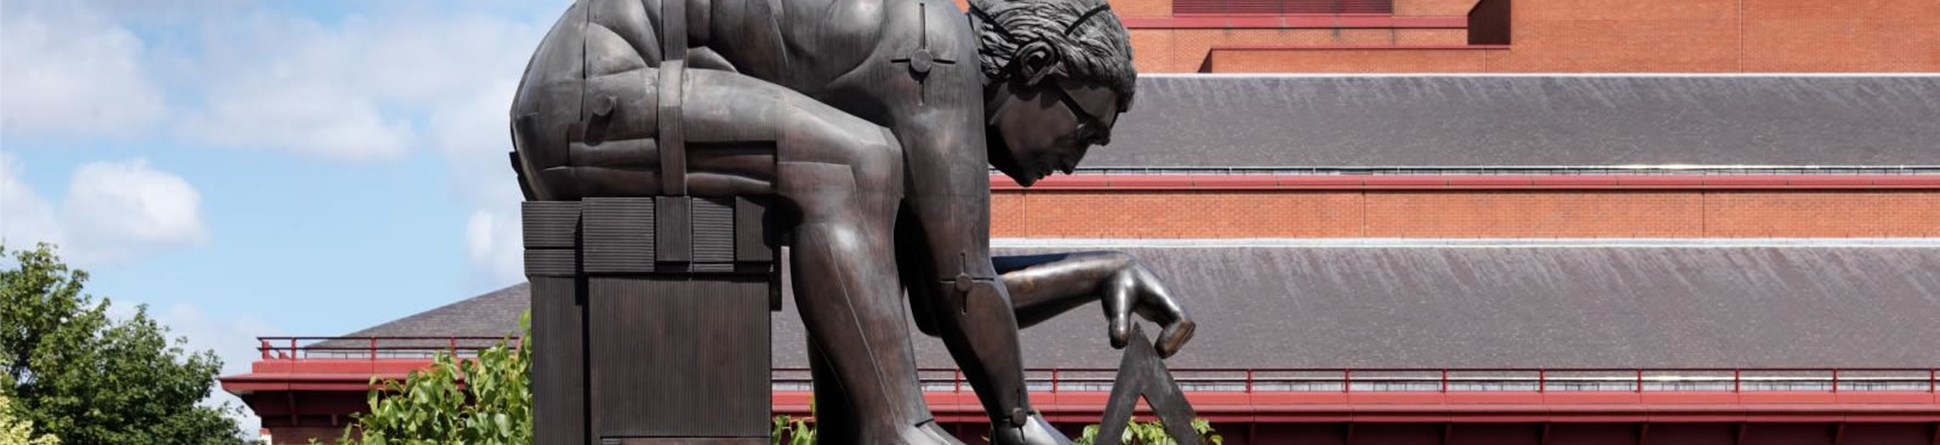 Newton After Blake, Eduado Paolozzi sculpture in the courtyard of the British Library.